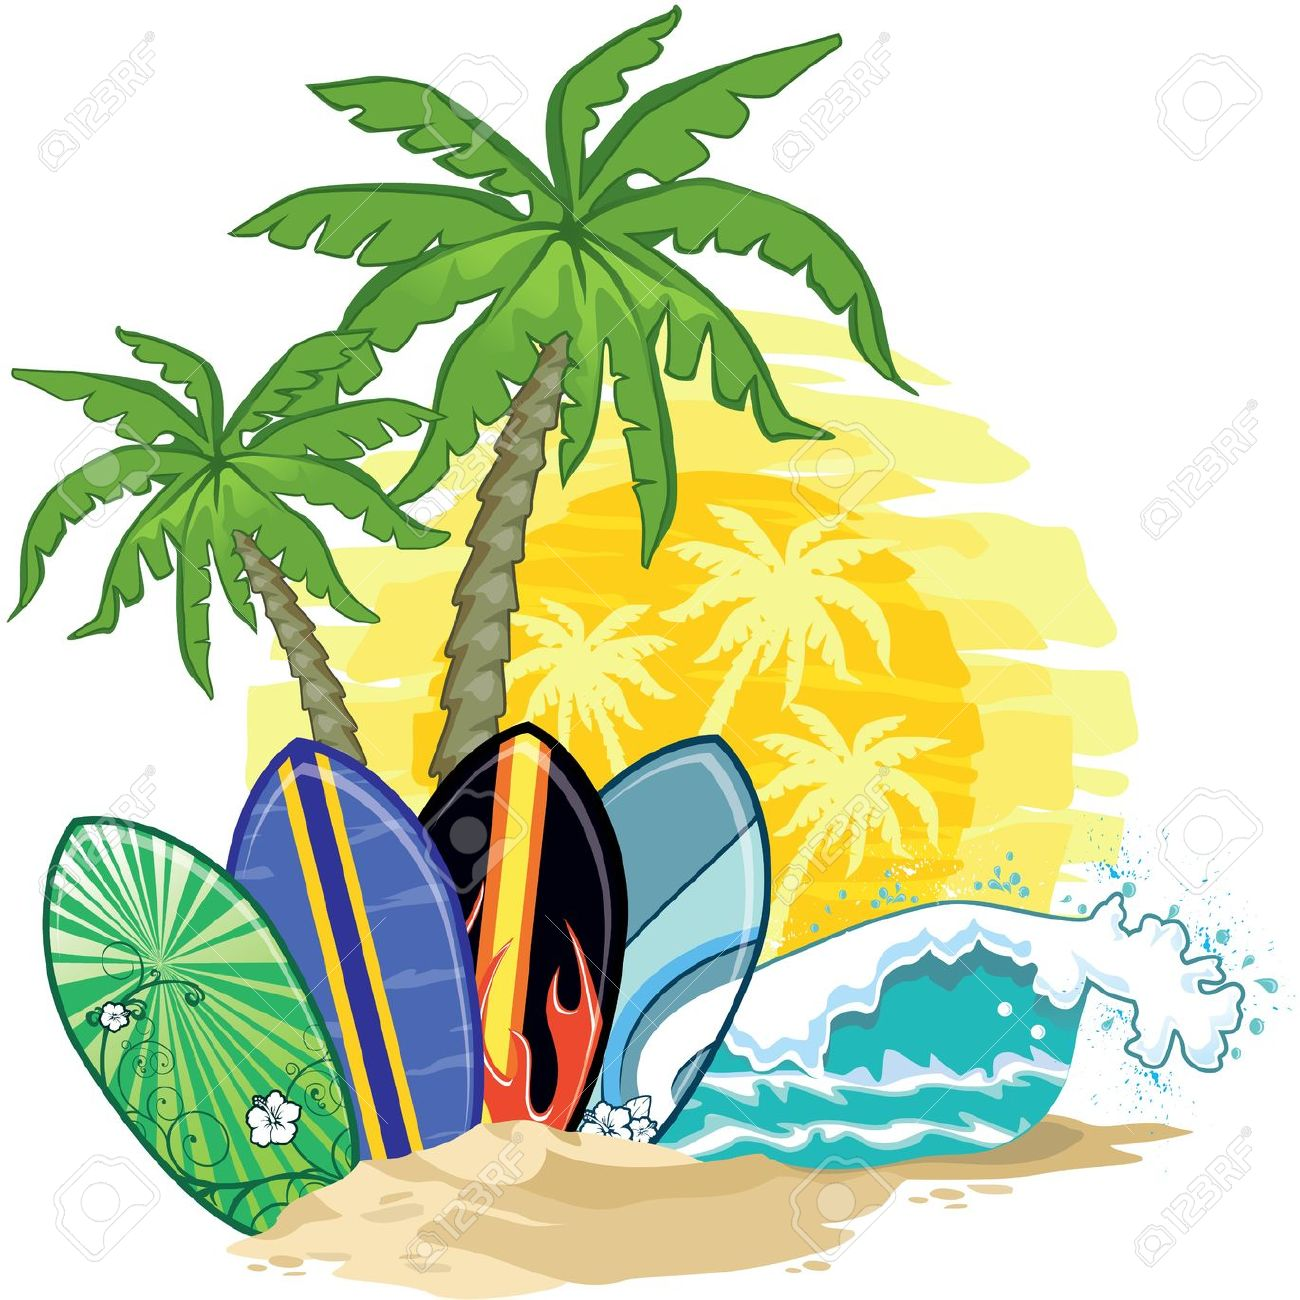 Palm tree and surfboard clipart clipart freeuse stock Surfboard clipart standing palm tree - ClipartFest clipart freeuse stock